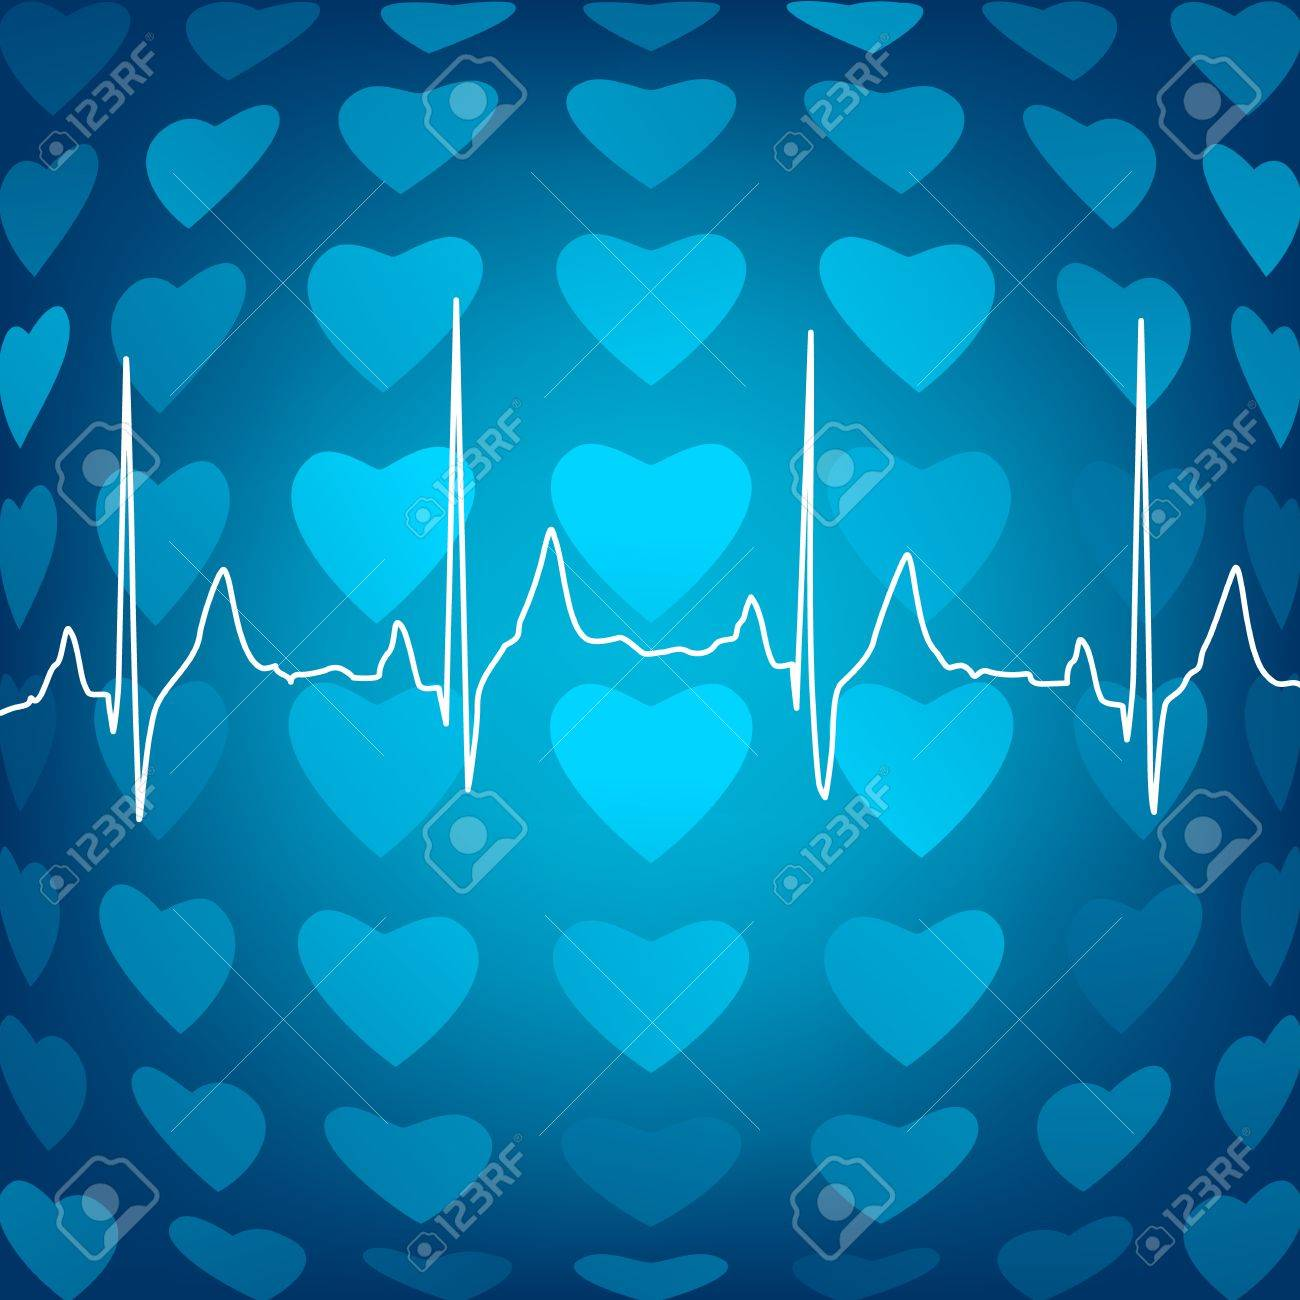 Heart beat abstract background, vector eps8 illustration Stock Vector - 9601783